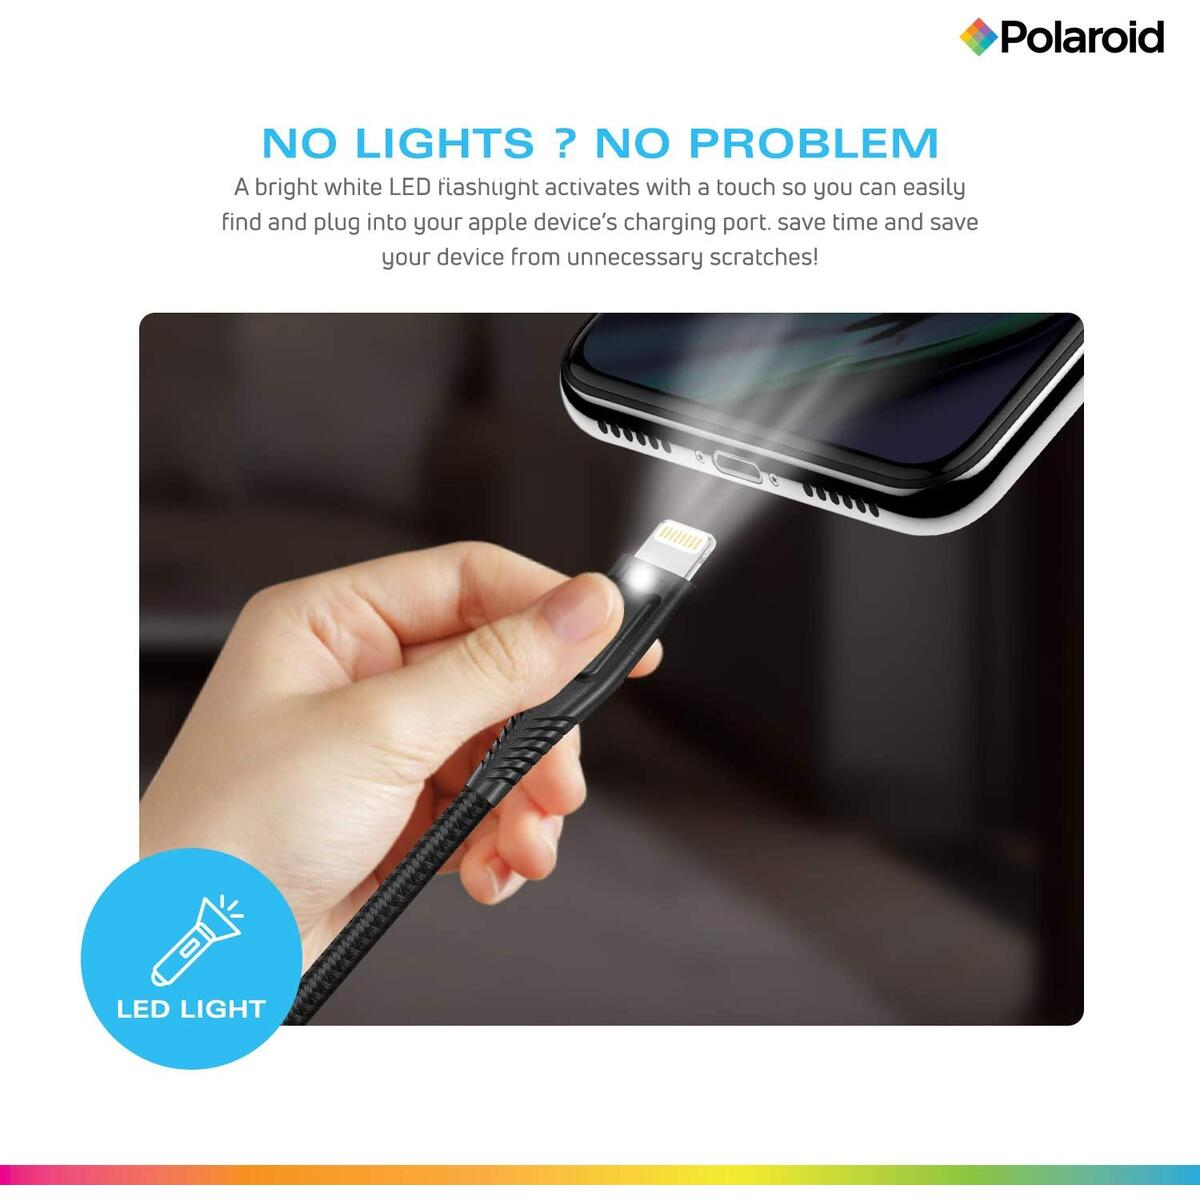 Polaroid 5ft Lightning Cable, Apple MFi Certified, with LED Light, Braided Spun Nylon, iPhone Charger Cable